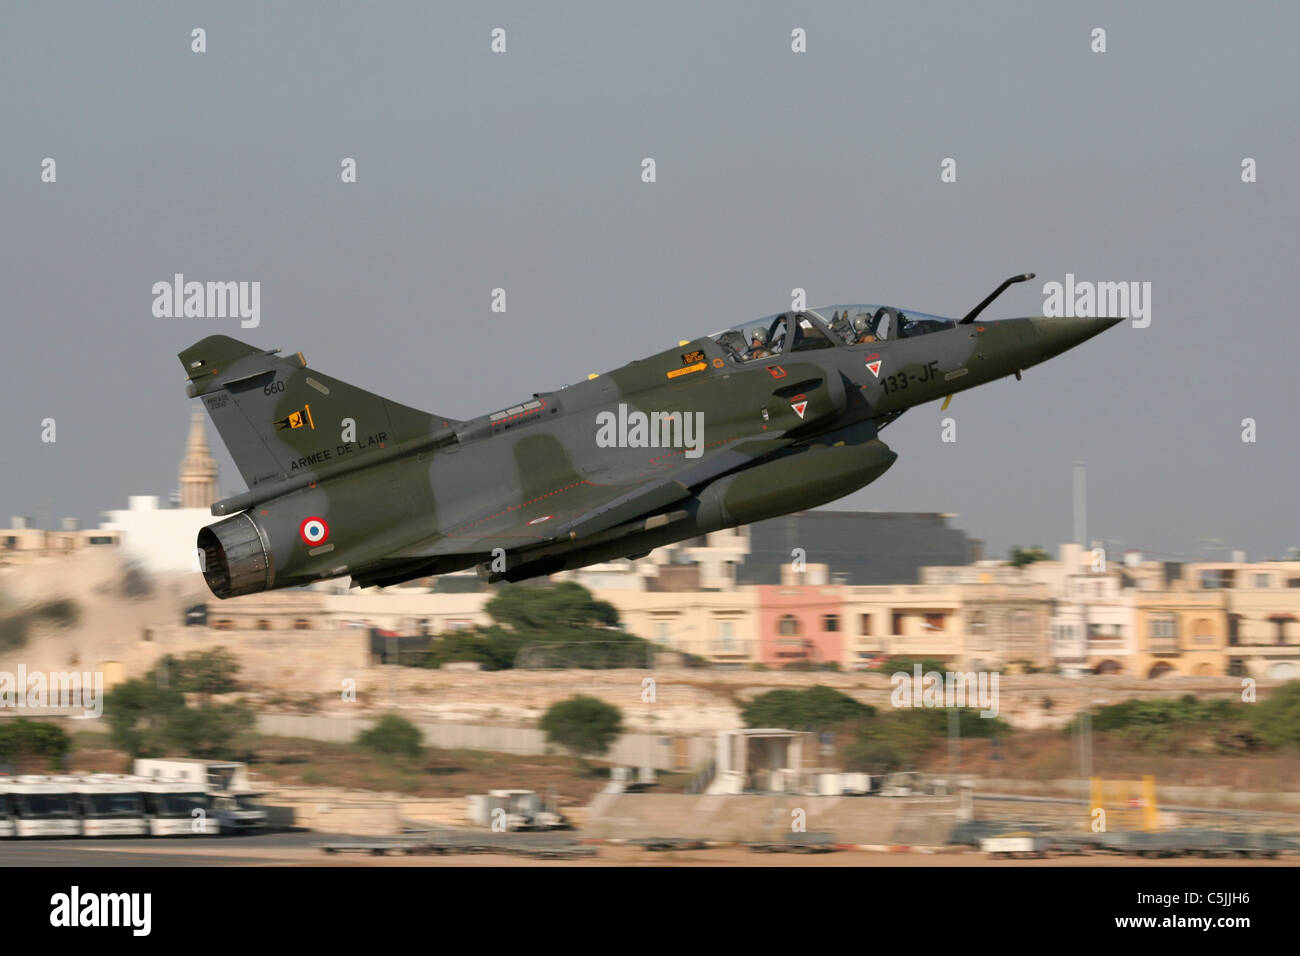 Military aviation. French Air Force Mirage 2000D combat jet taking off from Malta after an emergency landing during - Stock Image